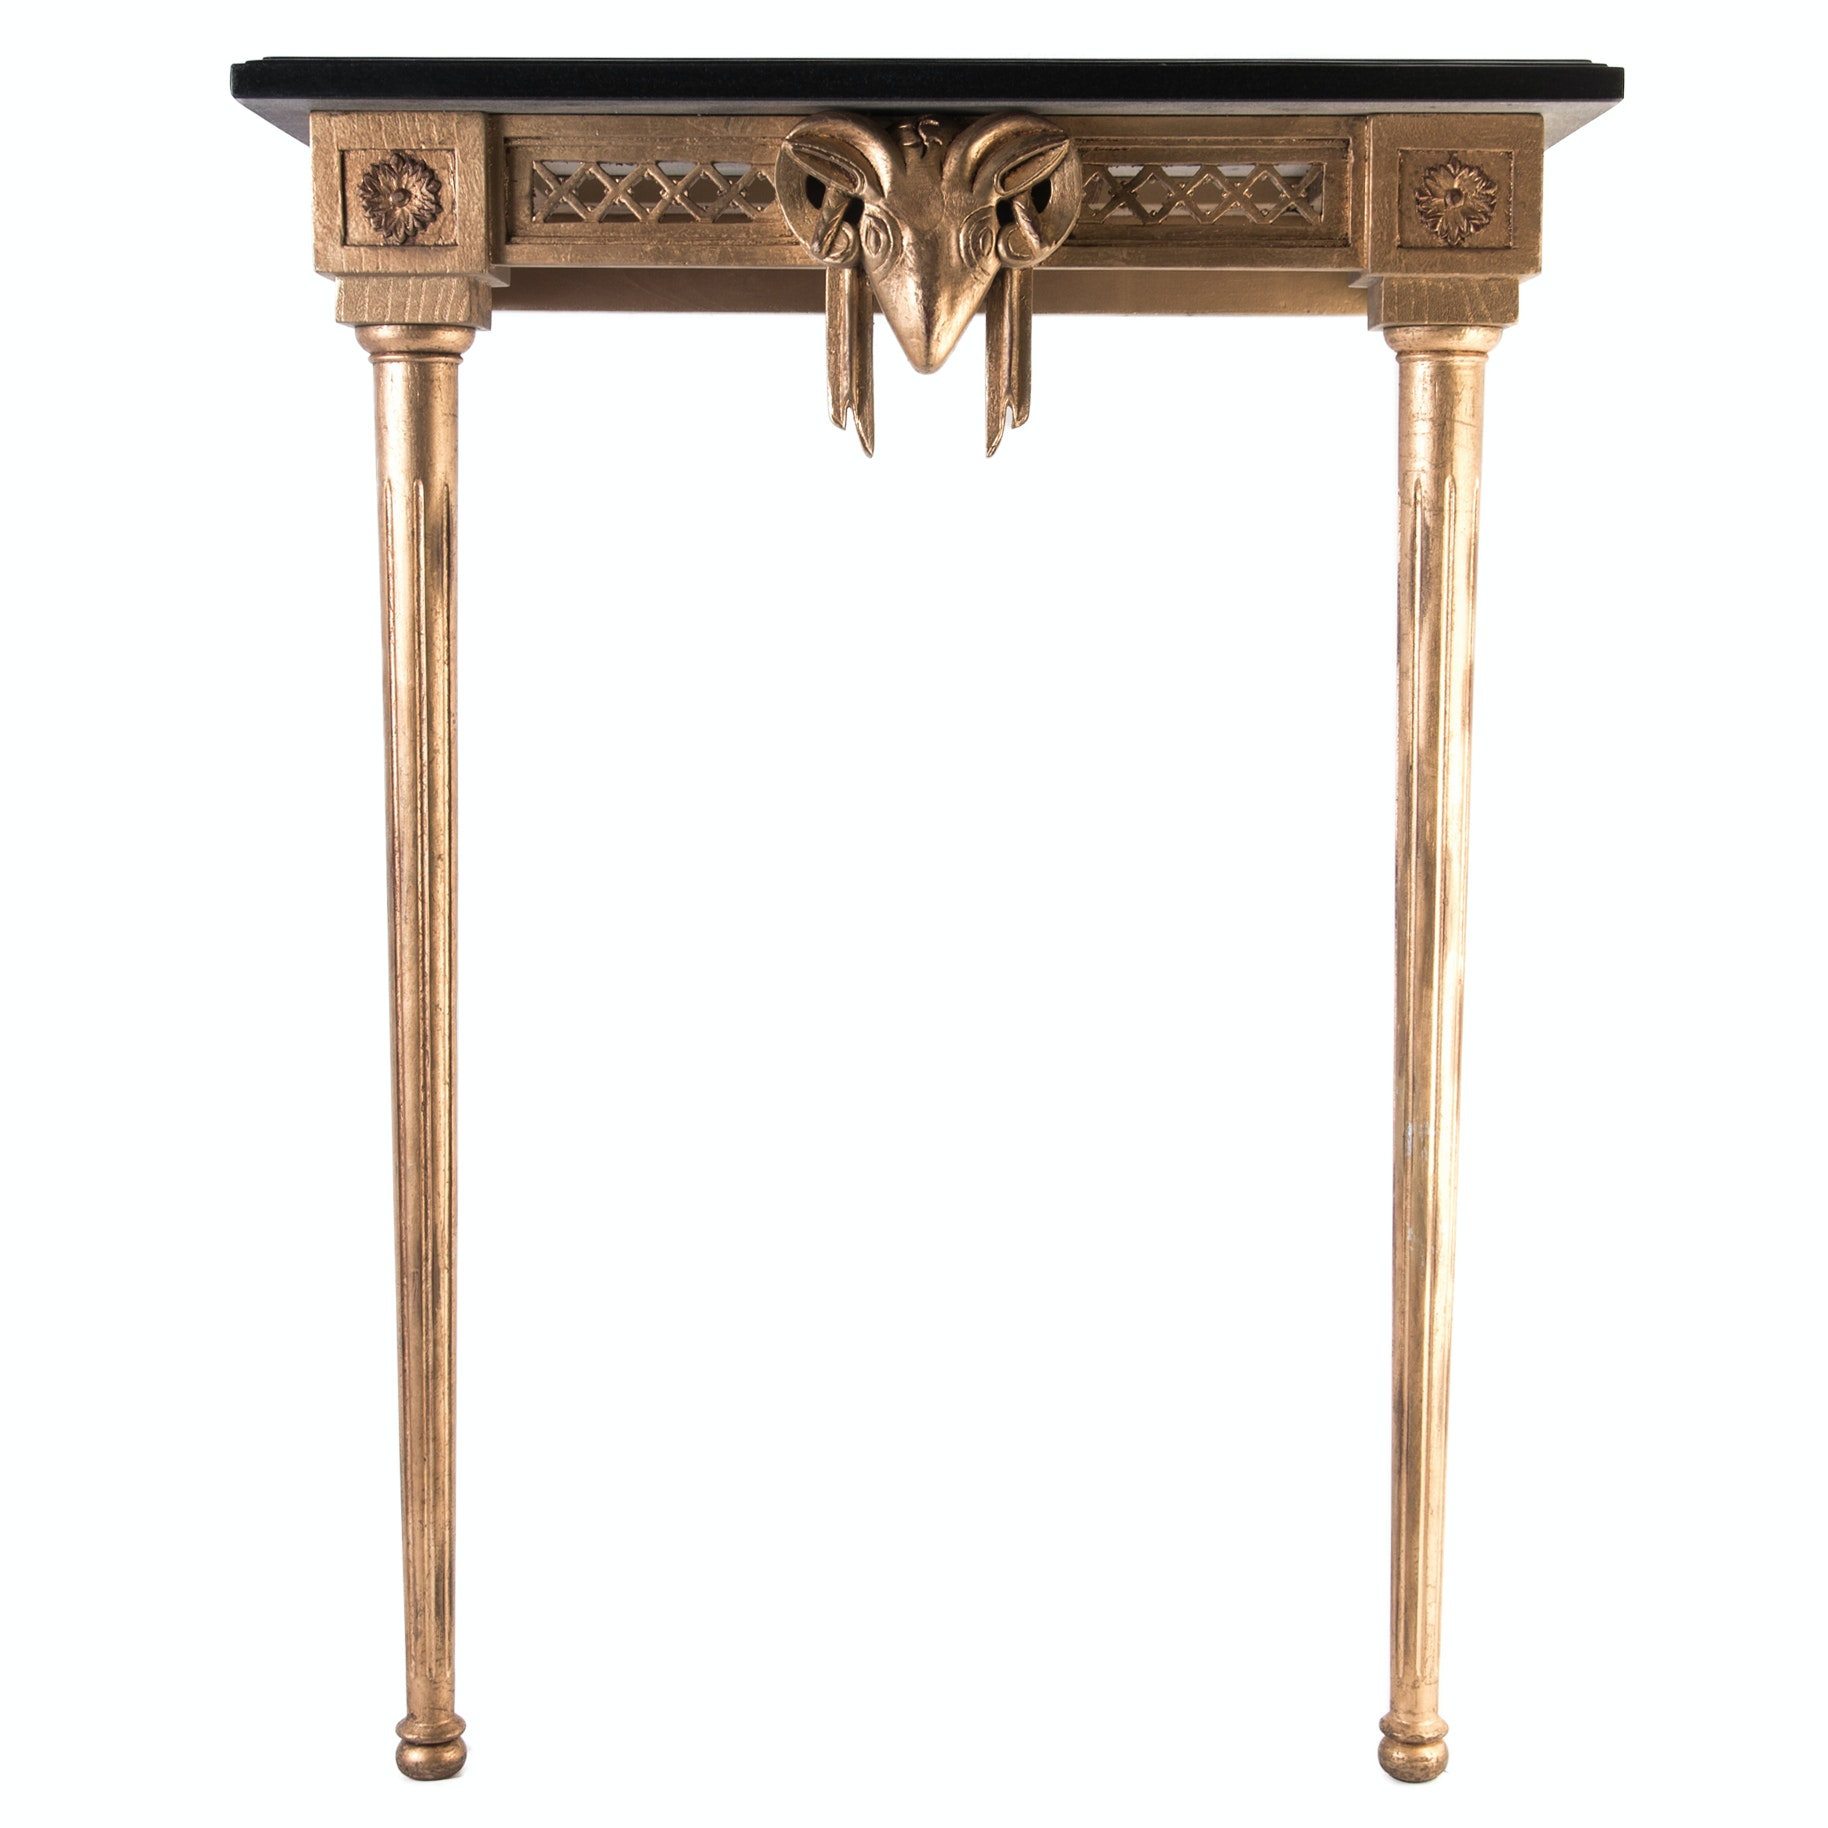 Delicieux Neoclassical Inspired Wall Mounted Entry Table ...